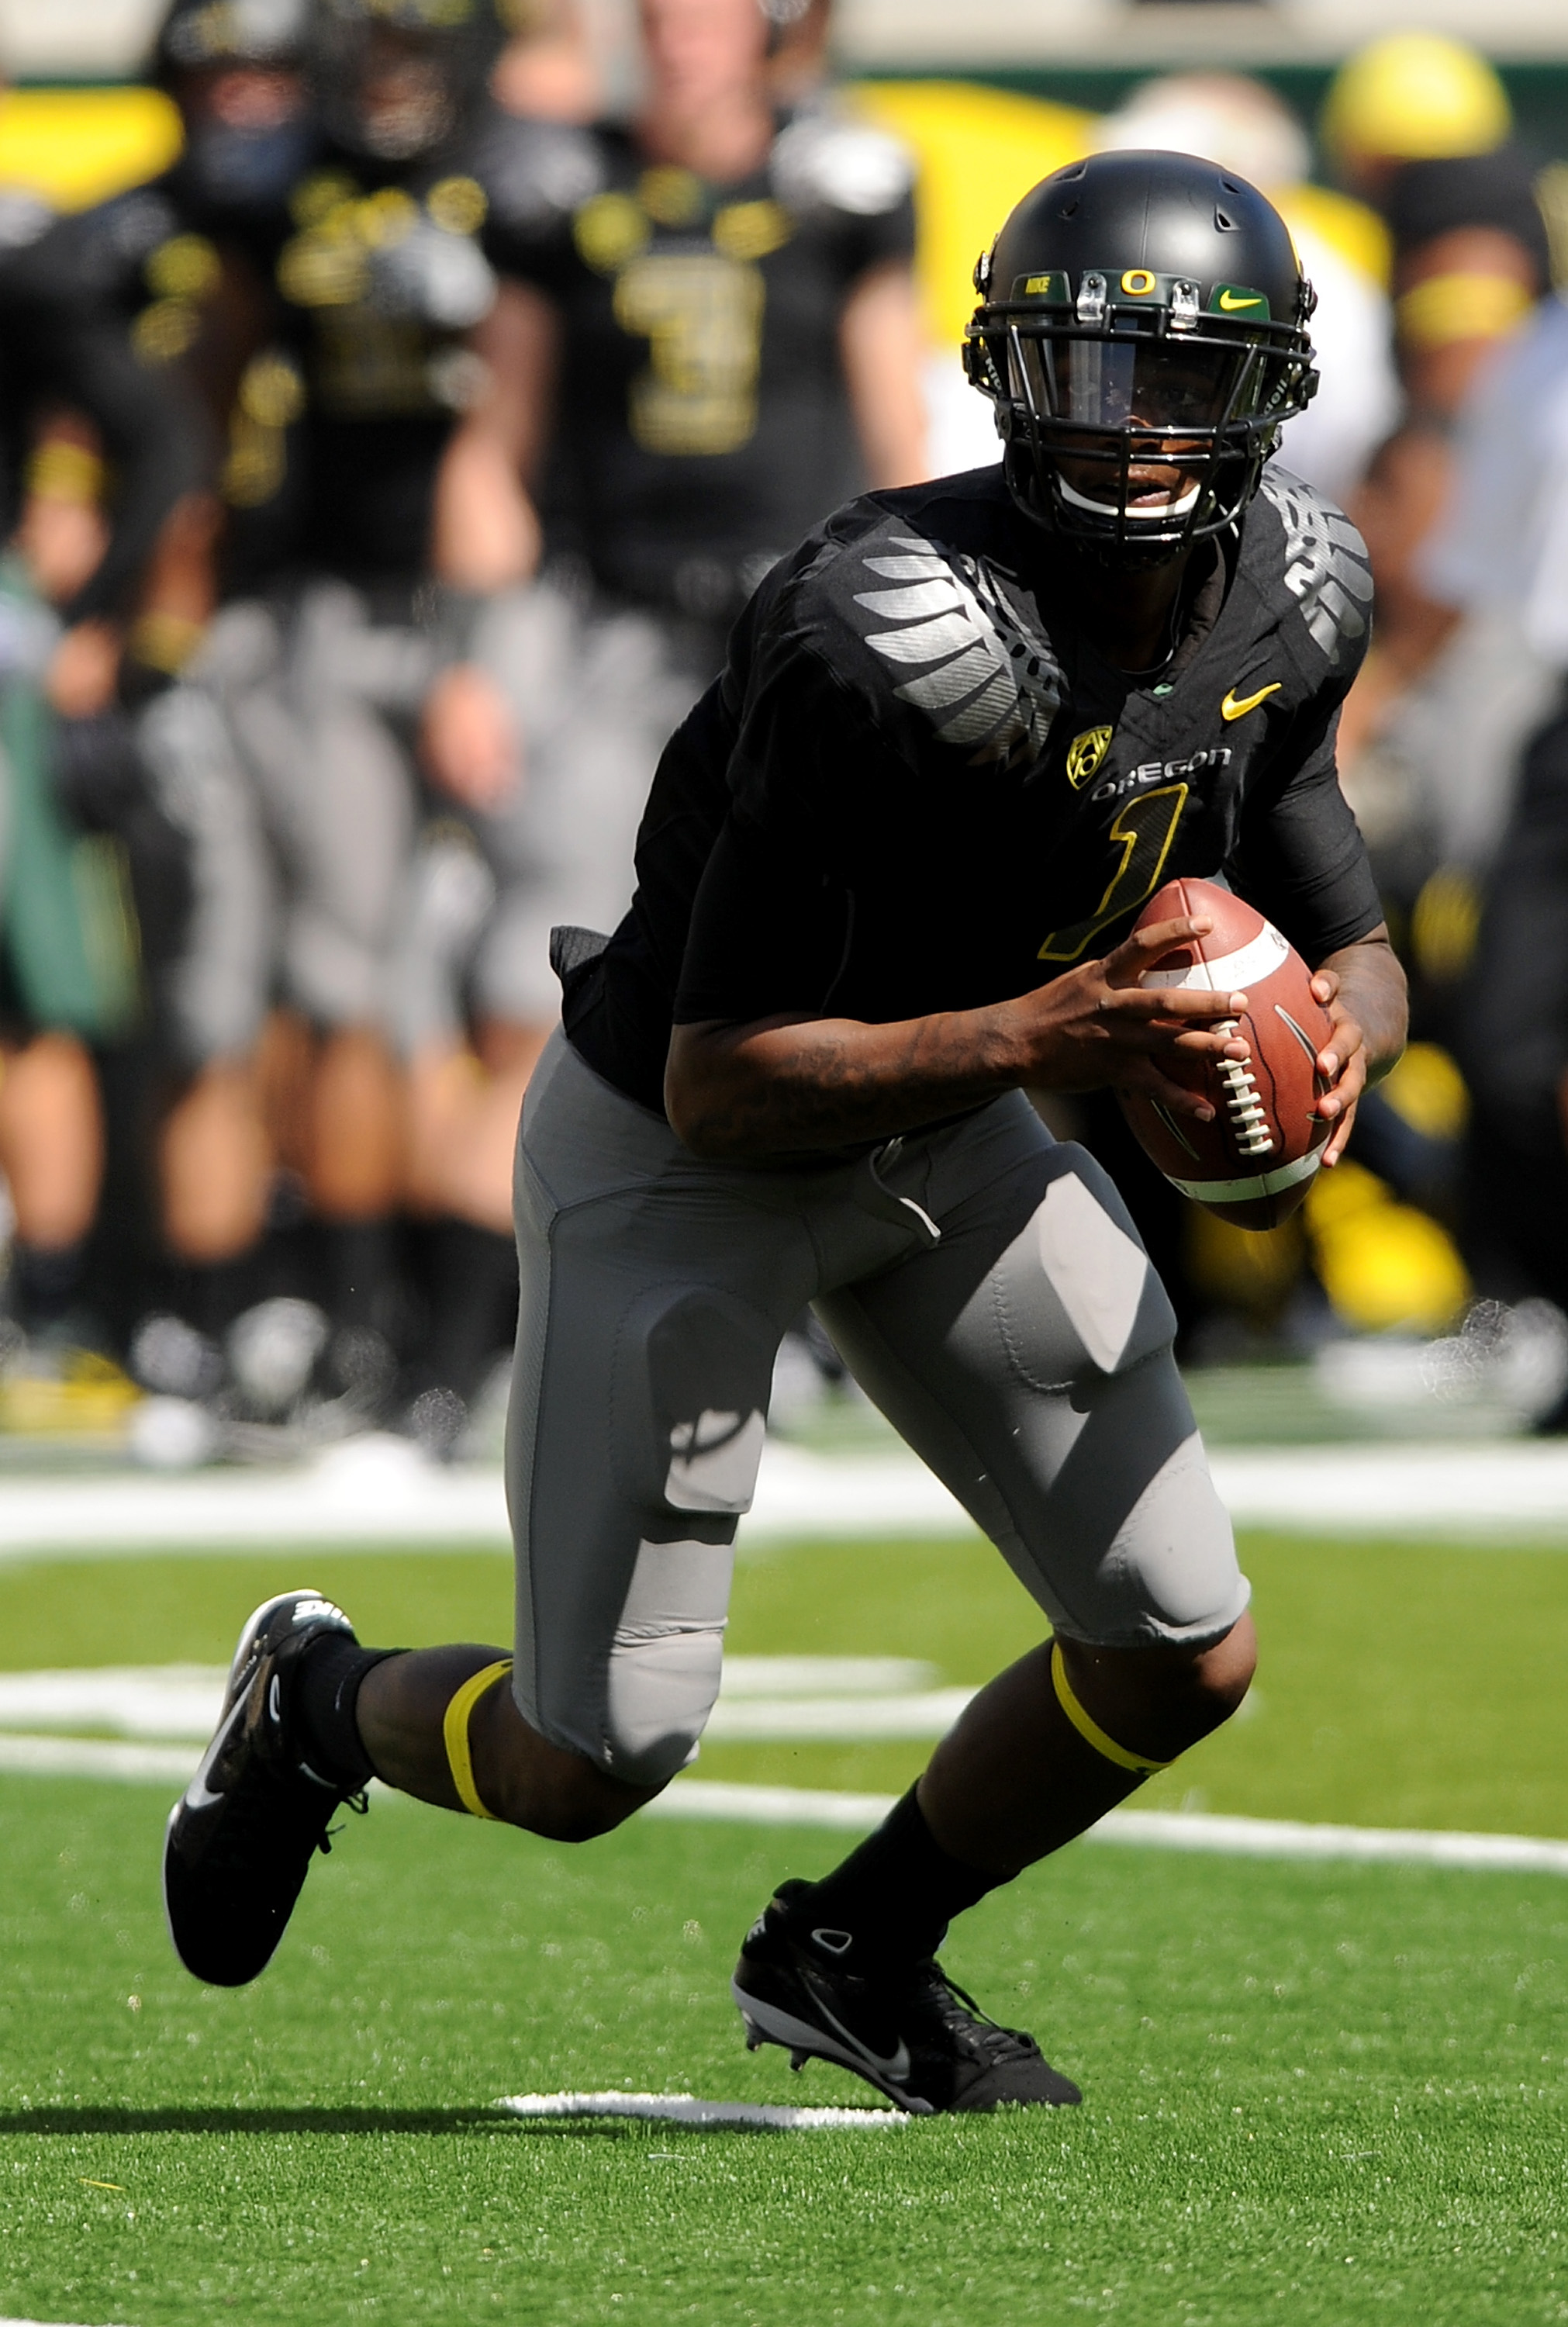 EUGENE, OR - SEPTEMBER 04:  Quarterback Darron Thomas #1 of the Oregon Ducks rolls out of the pocket in the second quarter of the game against the New Mexico Lobos at Autzen Stadium on September 4, 2010 in Eugene, Oregon. Oregon won the game 72-0. (Photo